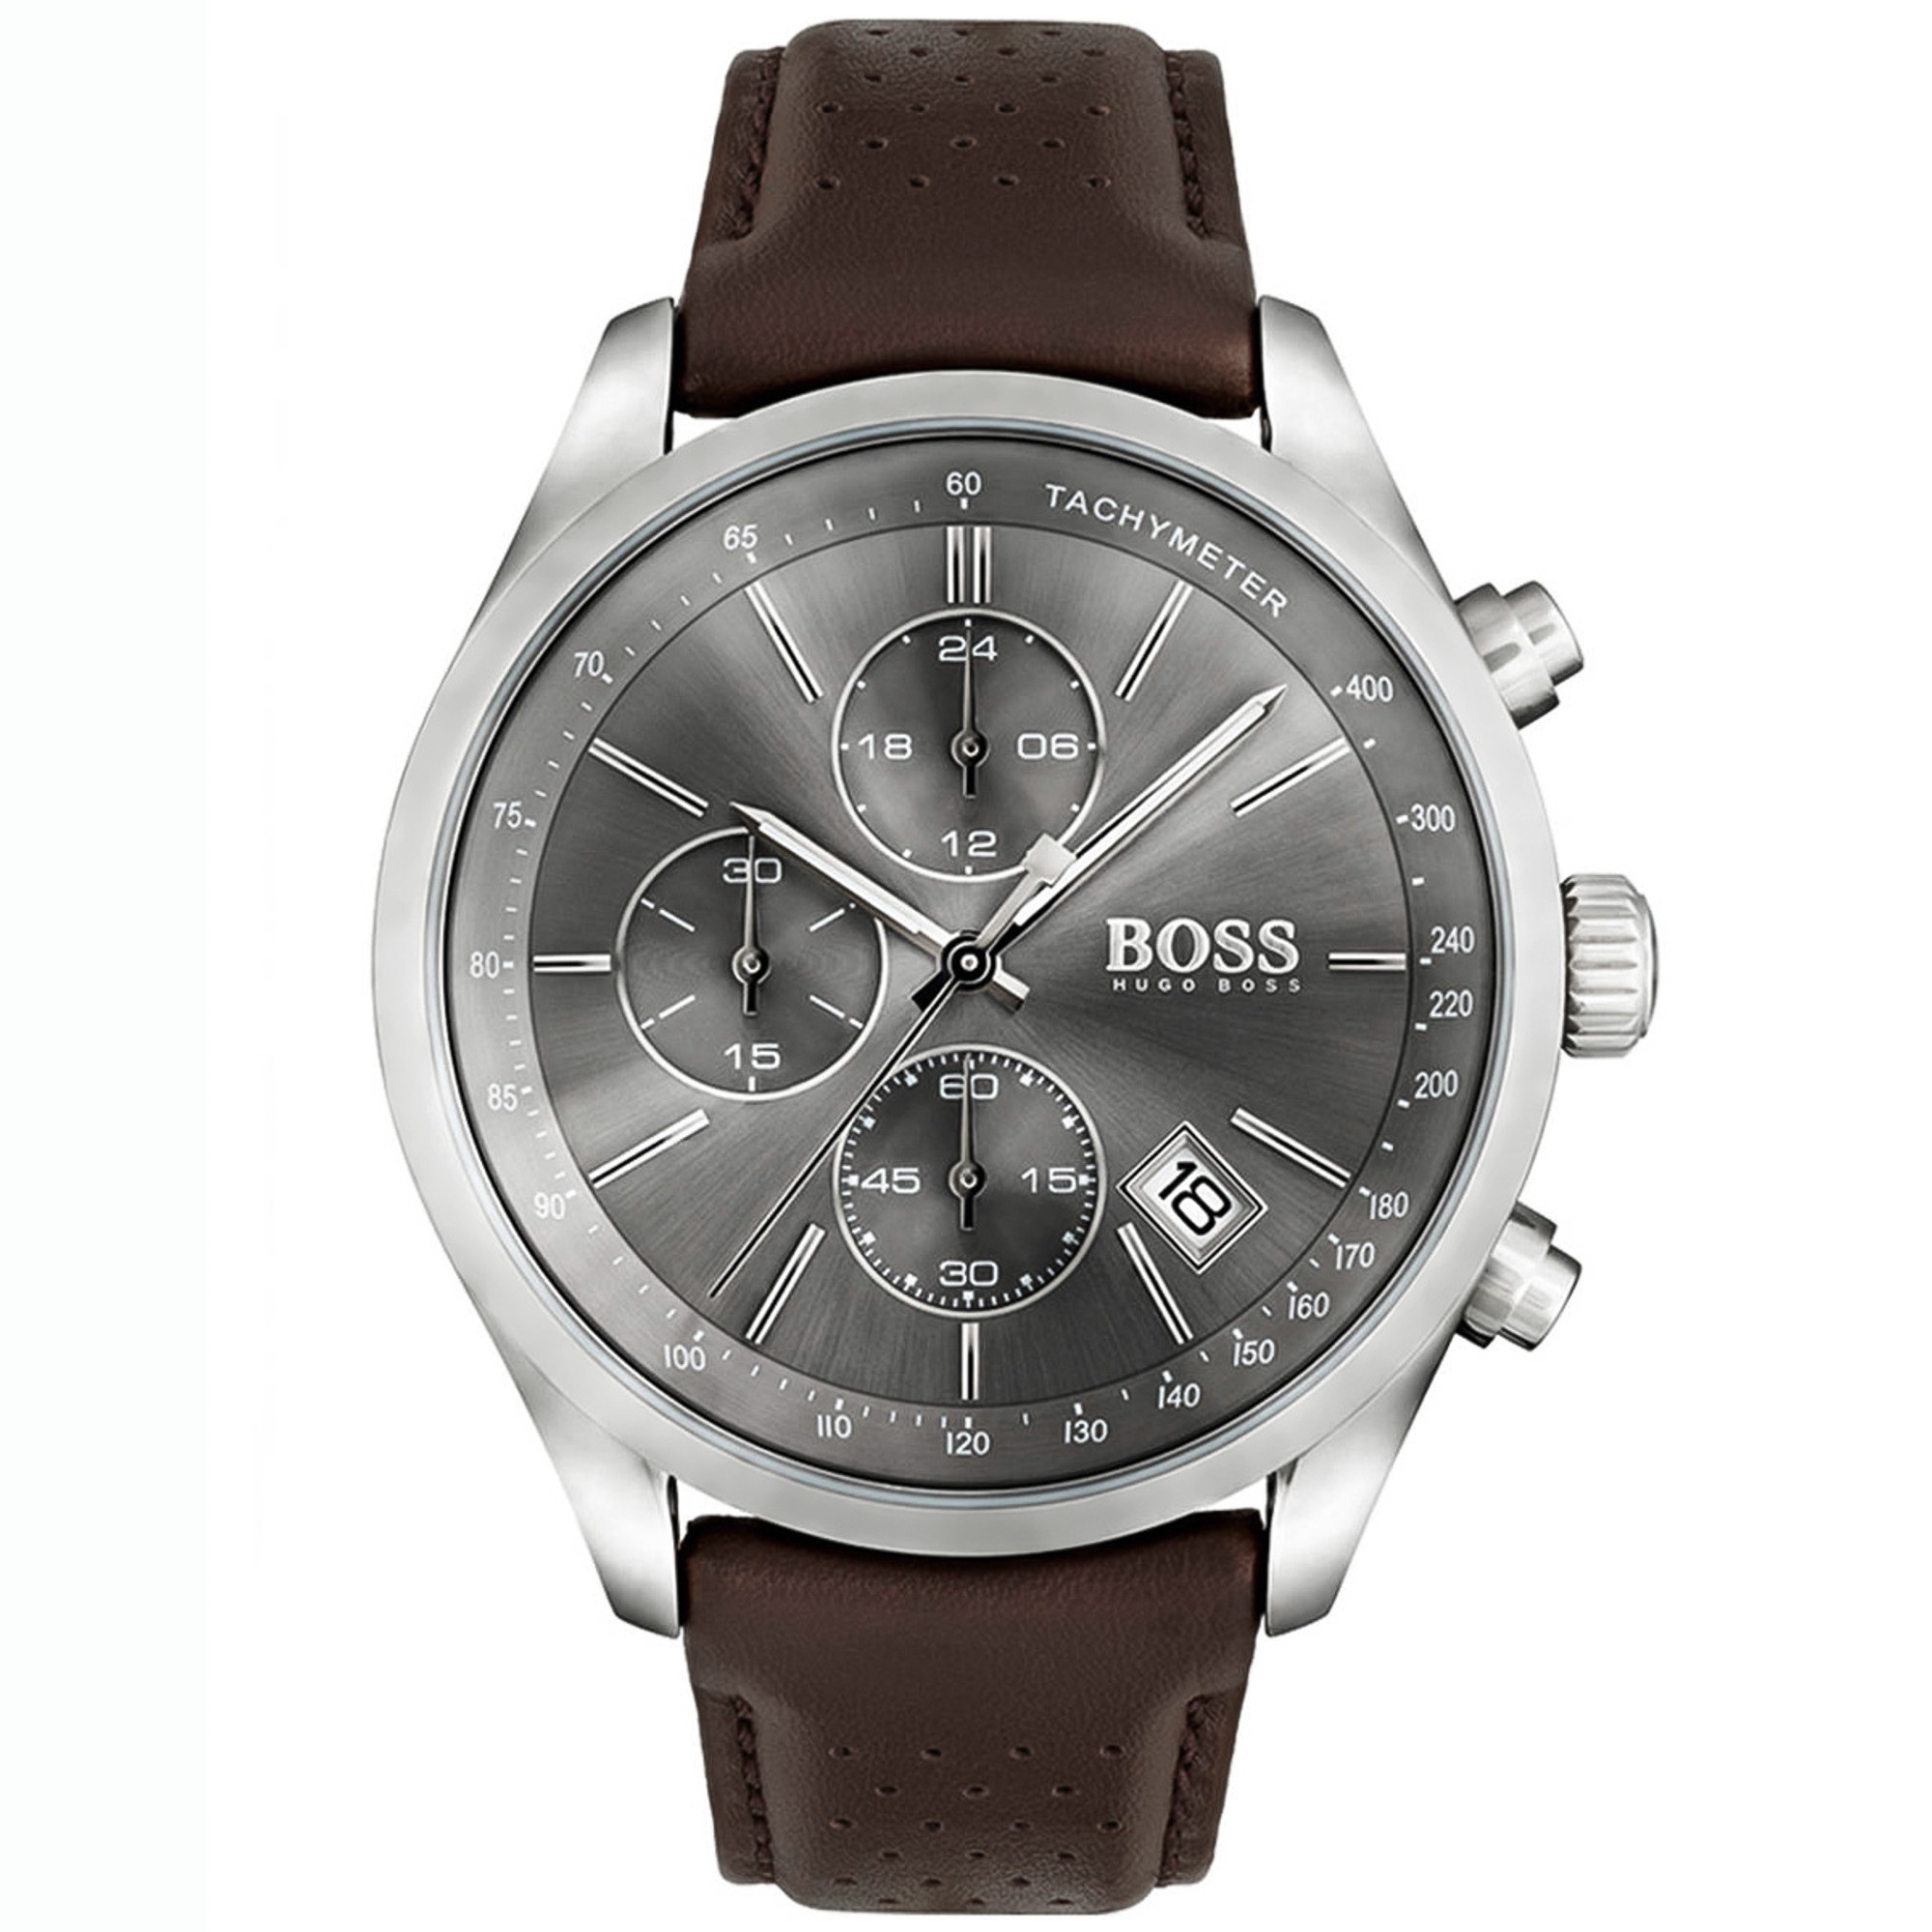 HUGO BOSS Grand Prix Quarz Chronograph 1513476